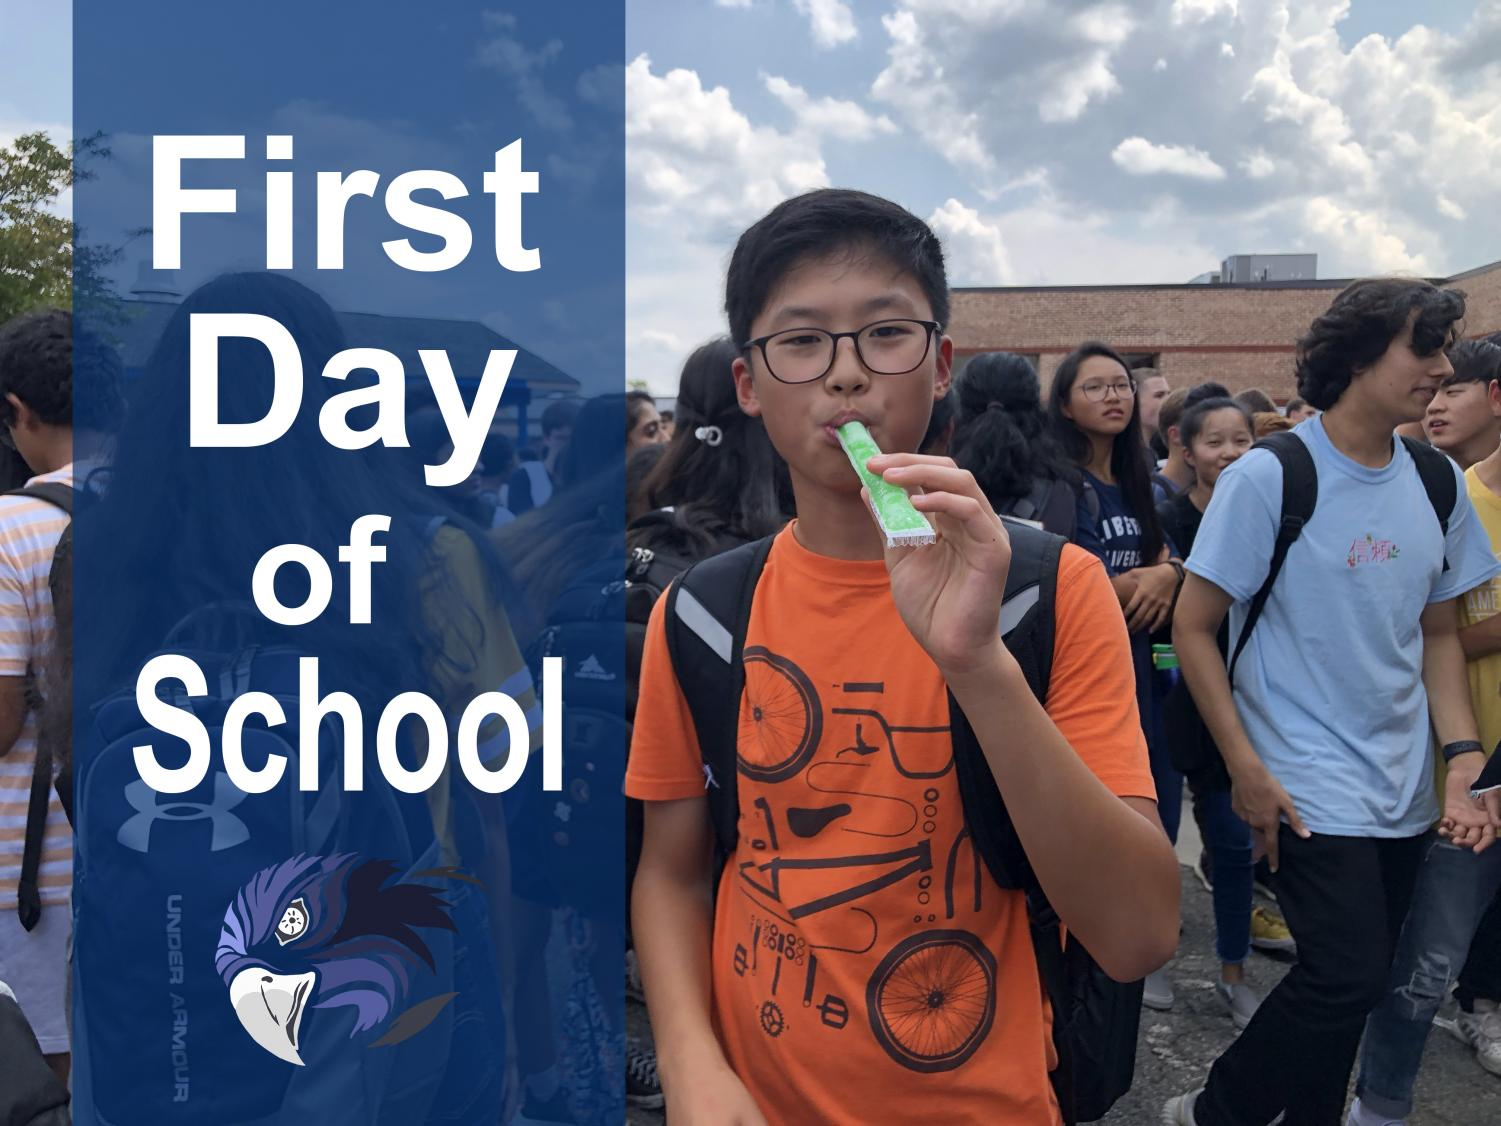 A new way to start the year. South High's war eagles started their year off with friends, spirit, and fun. Throughout the day, students participated in a pep rally, played icebreakers in their IF classrooms, and had the opportunity to end the day with refreshing popsicles.